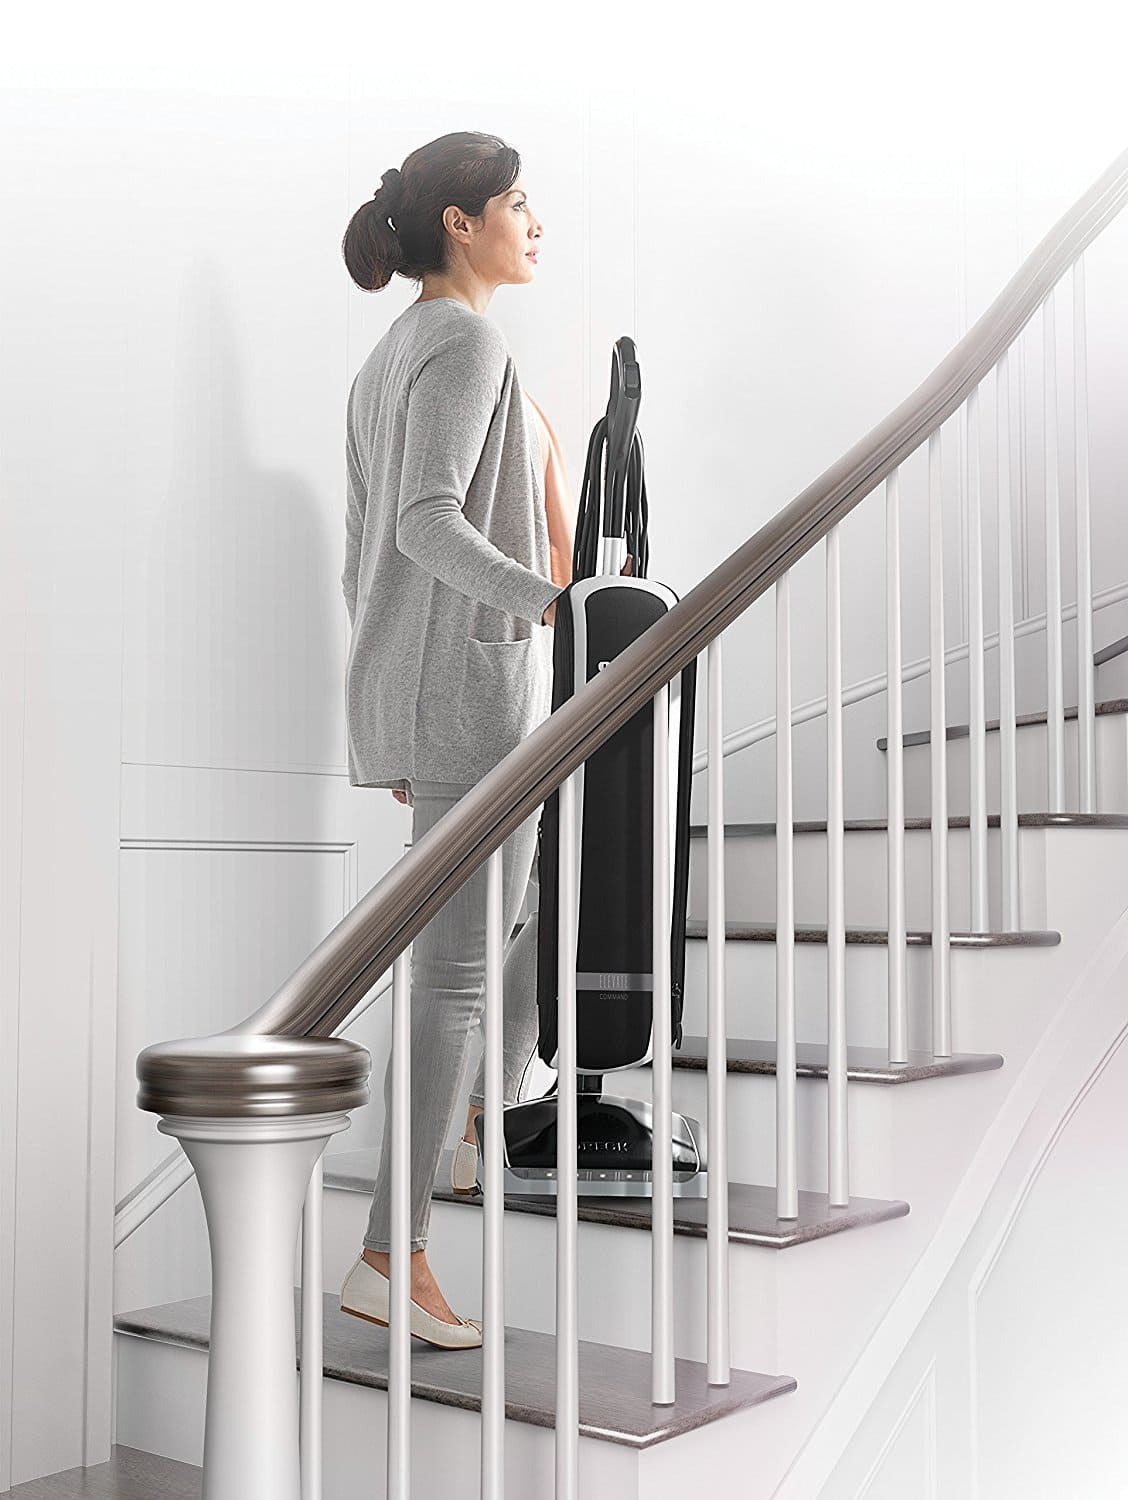 Master the art of taking your vacuum to the second floor with the 11 pound Oreck Elevate Conquer.